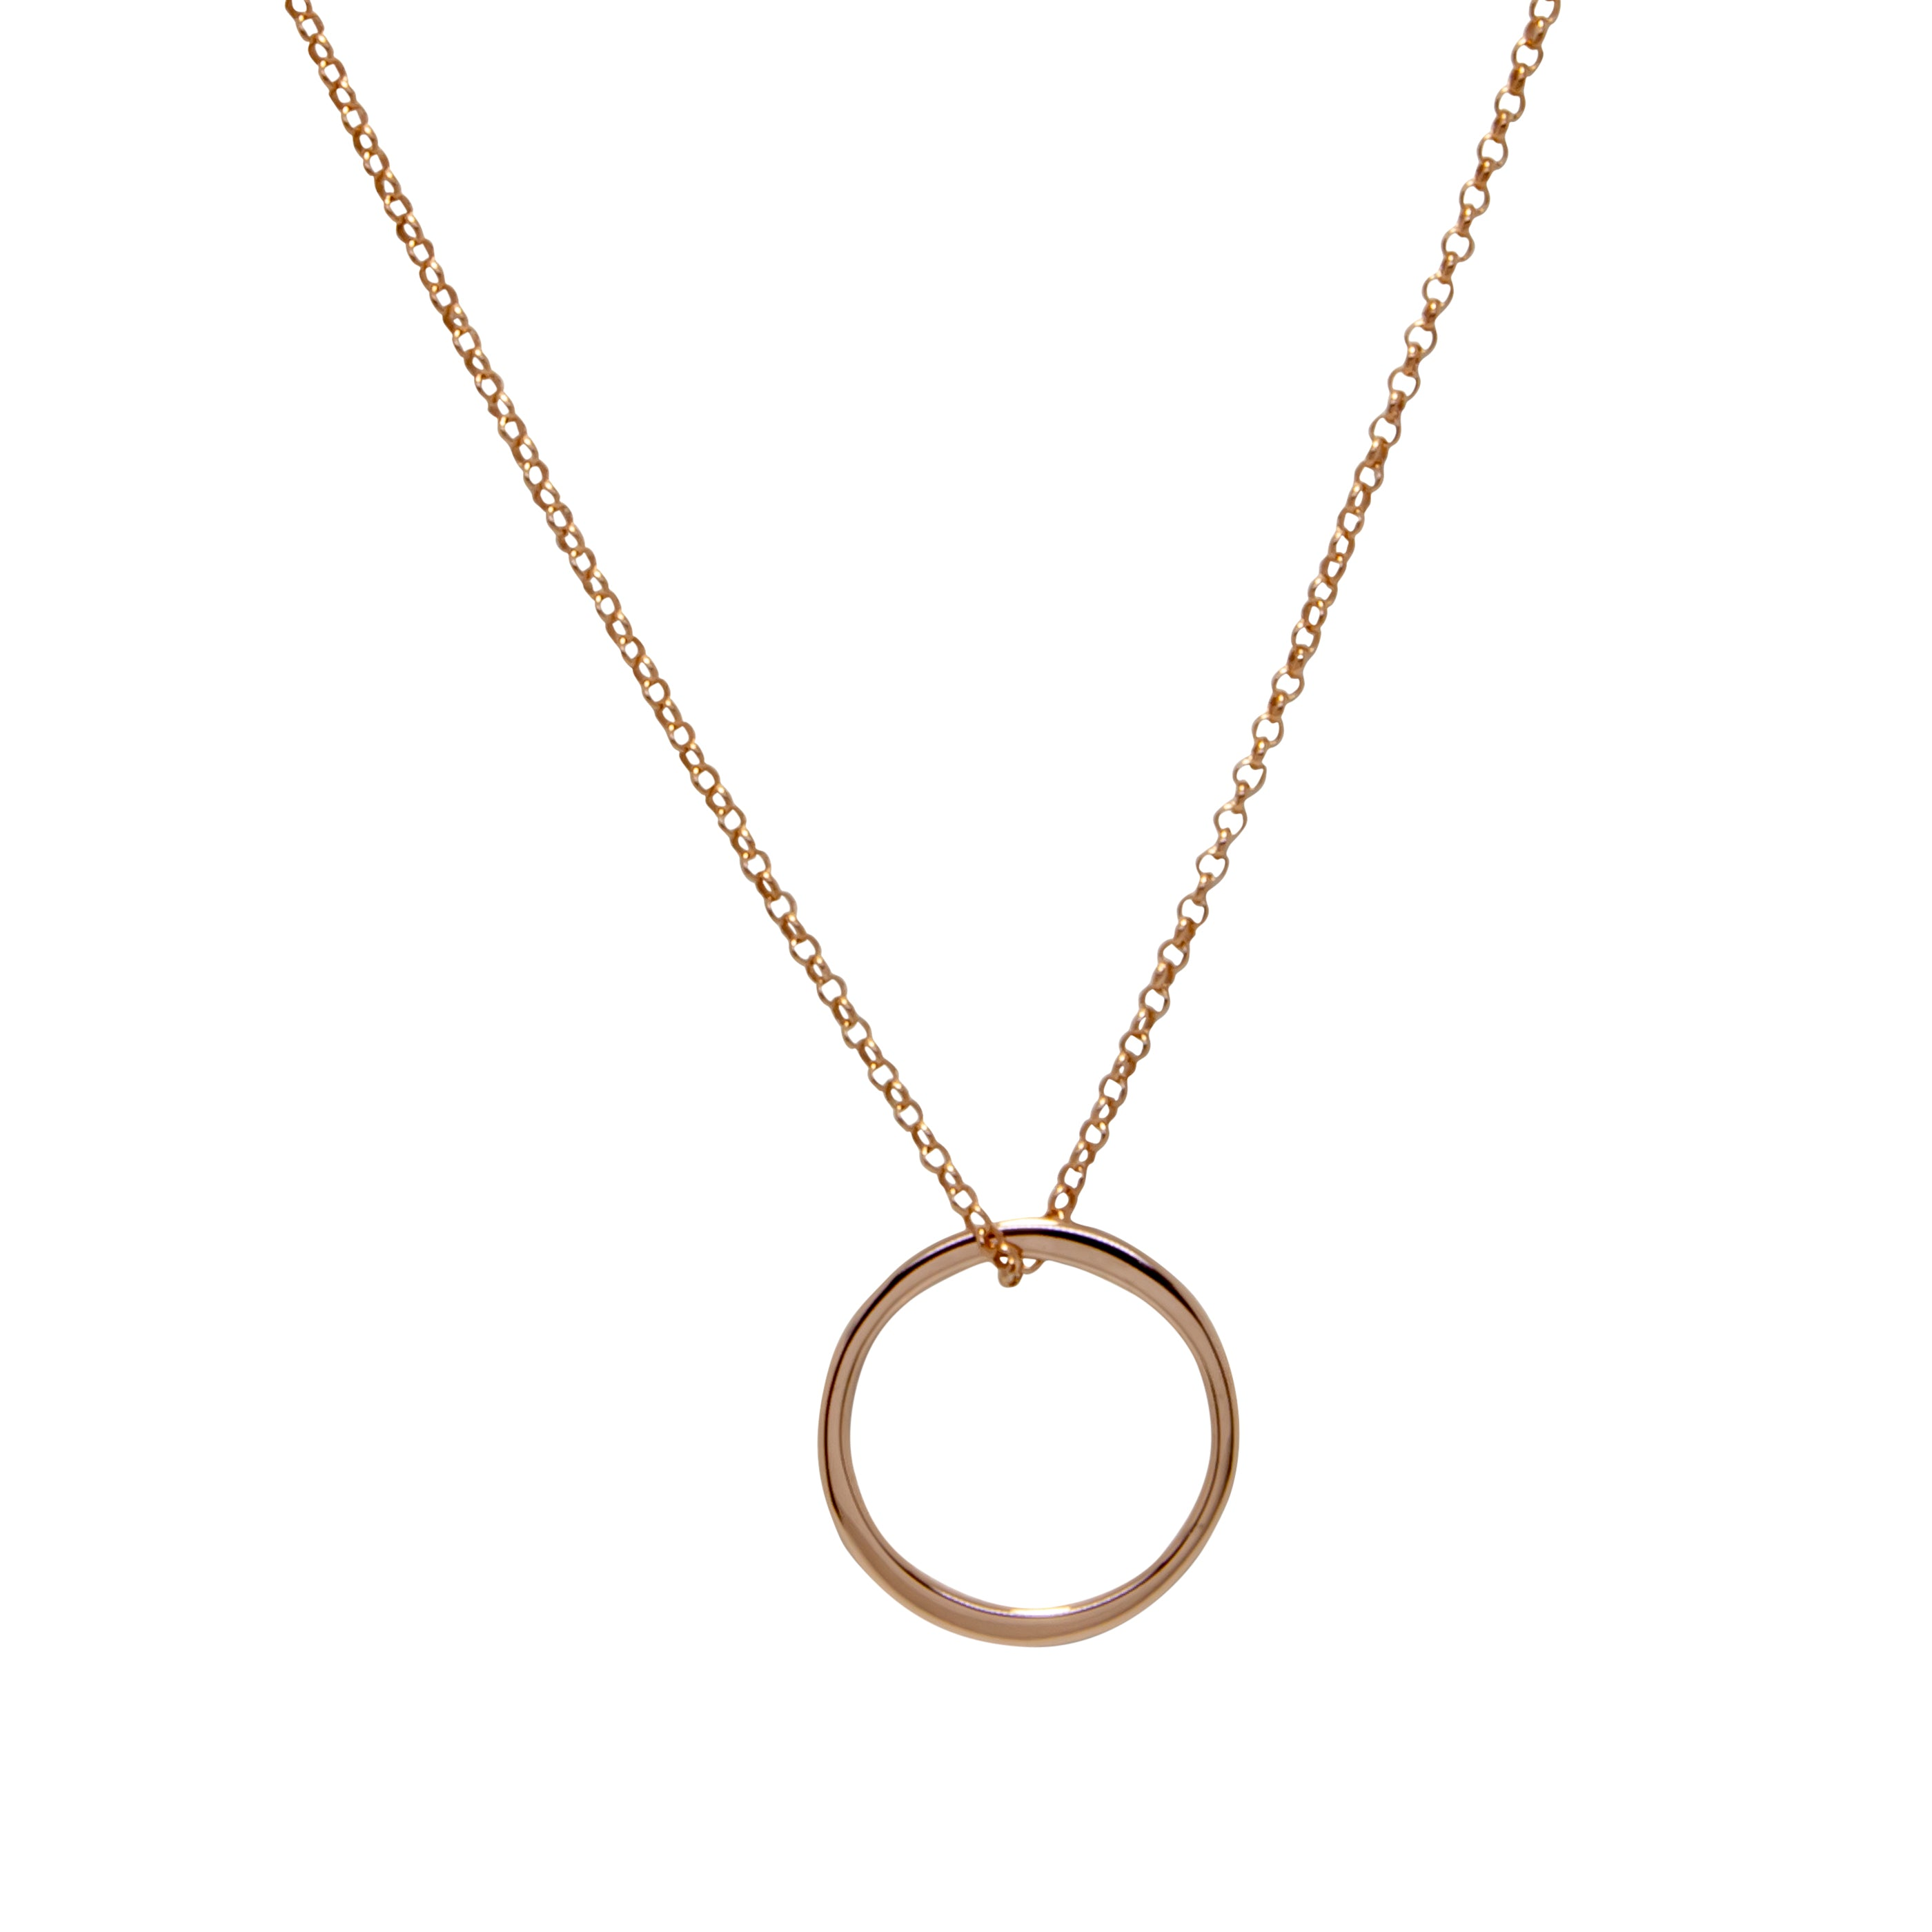 Inner Circle Necklace - Rose Gold Plated